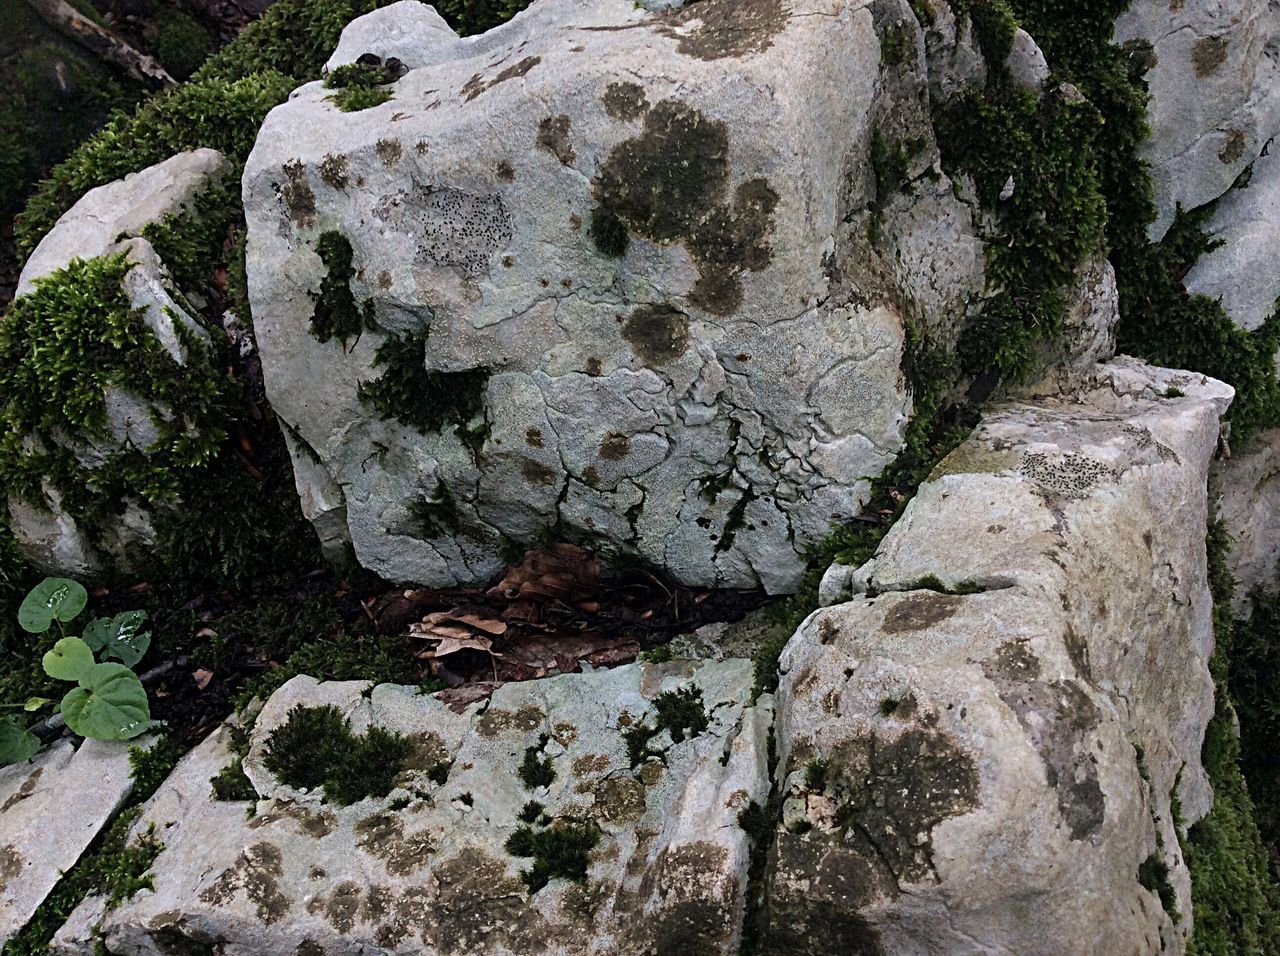 rock - object, rock formation, nature, outdoor pursuit, hiking, landscape, beauty in nature, tranquility, cave, no people, travel destinations, outdoors, day, adventure, forest, tree trunk, mountain, nature reserve, clear sky, tree, extreme sports, close-up